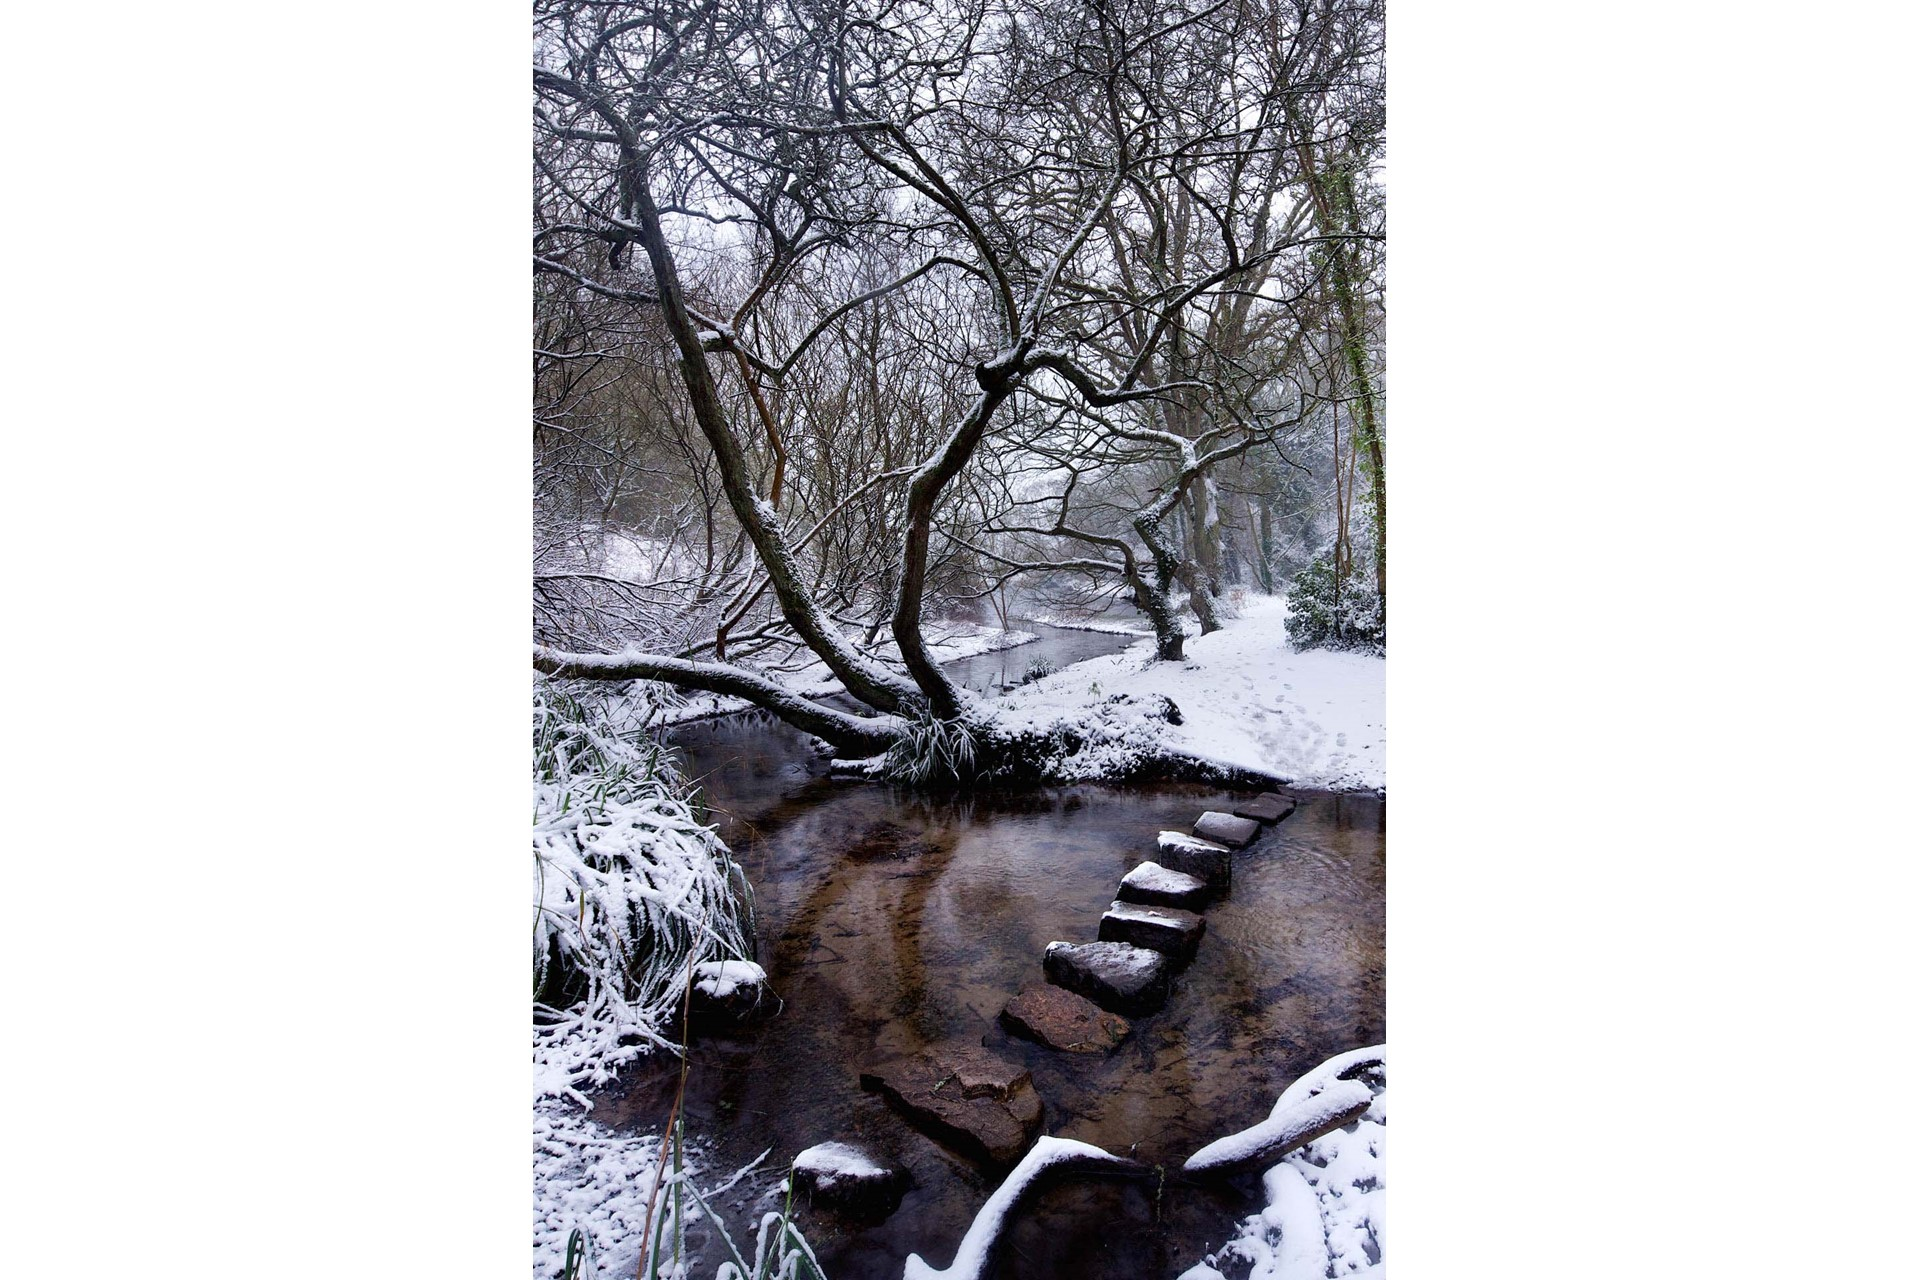 Stepping Stones to a winter wonderland at St Catherine's Woods